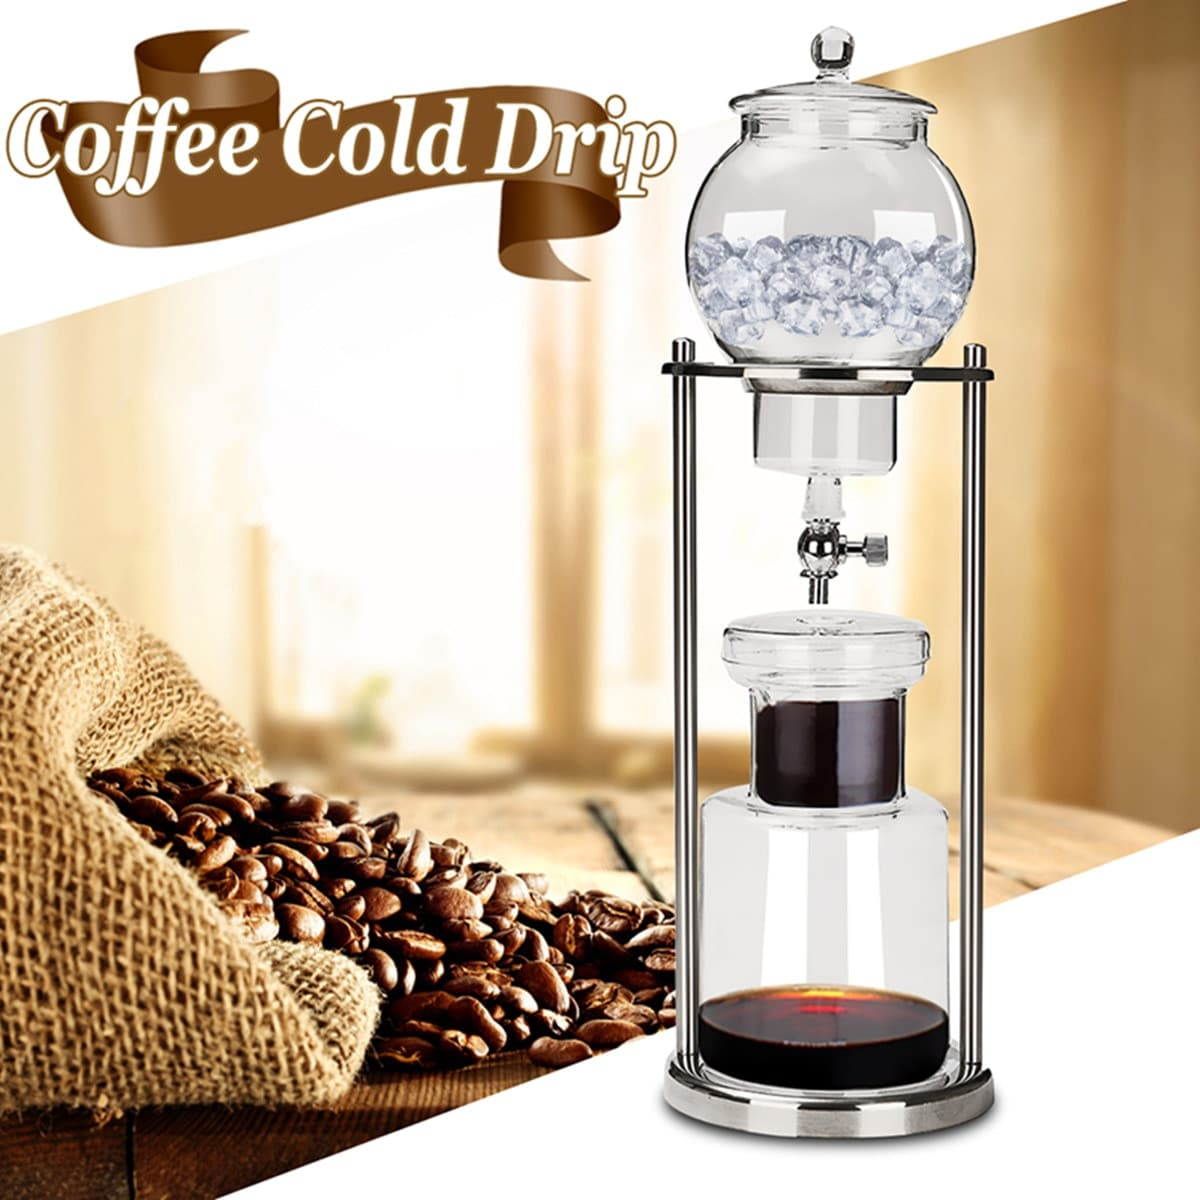 1000ML-Dutch-Coffee-Cold-Brew-Drip-Ice-Water-Hand-Coffee-Maker-Serve-For-10-Cups.jpg